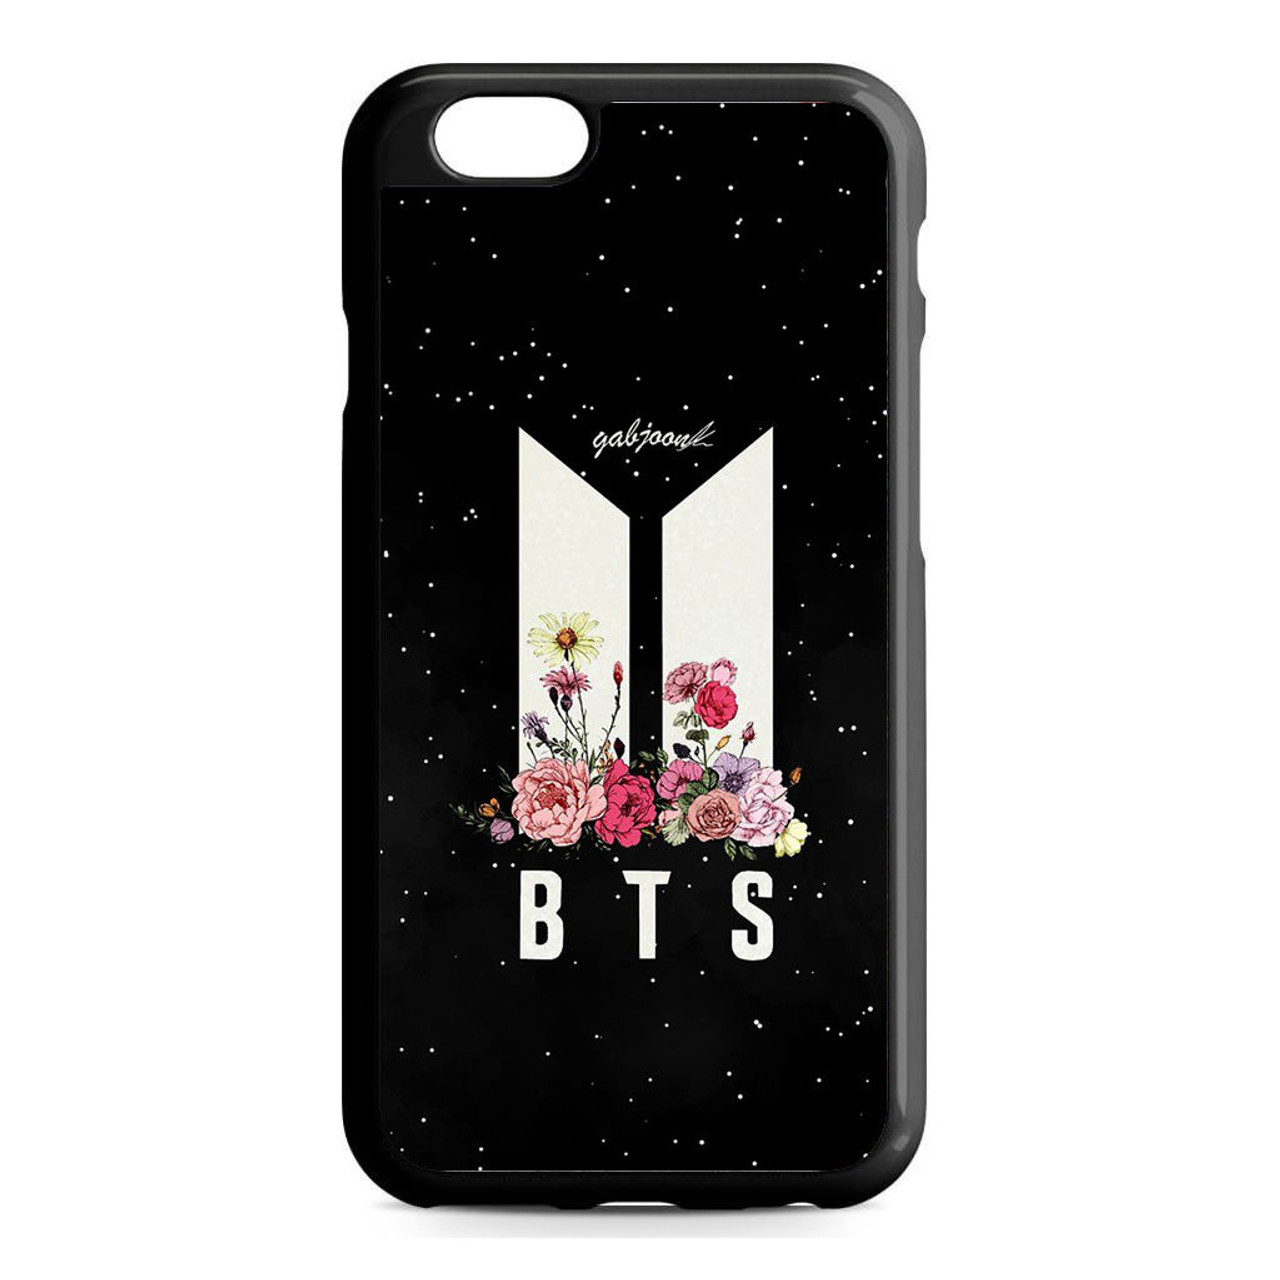 bts iphone 6 case